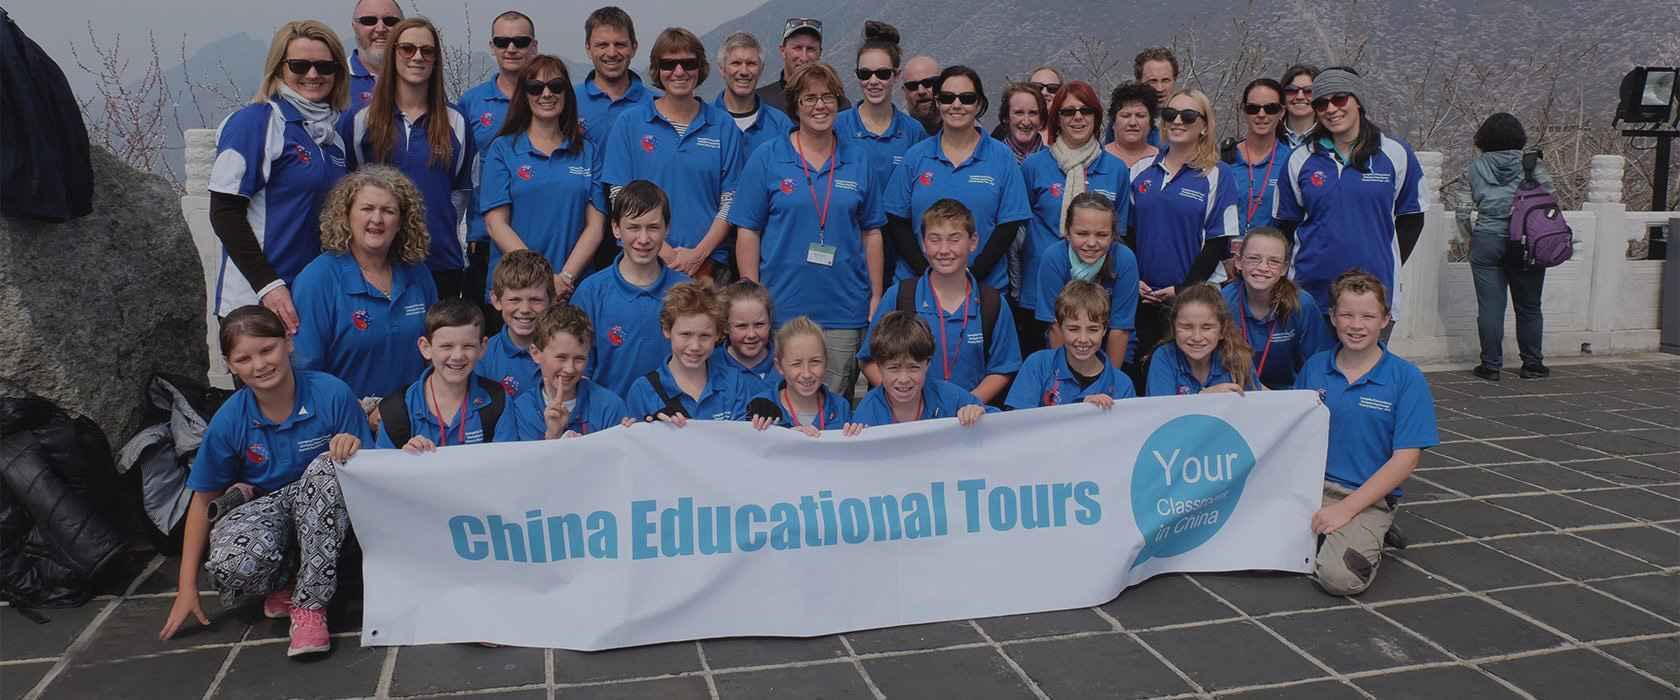 educational tours on great wall